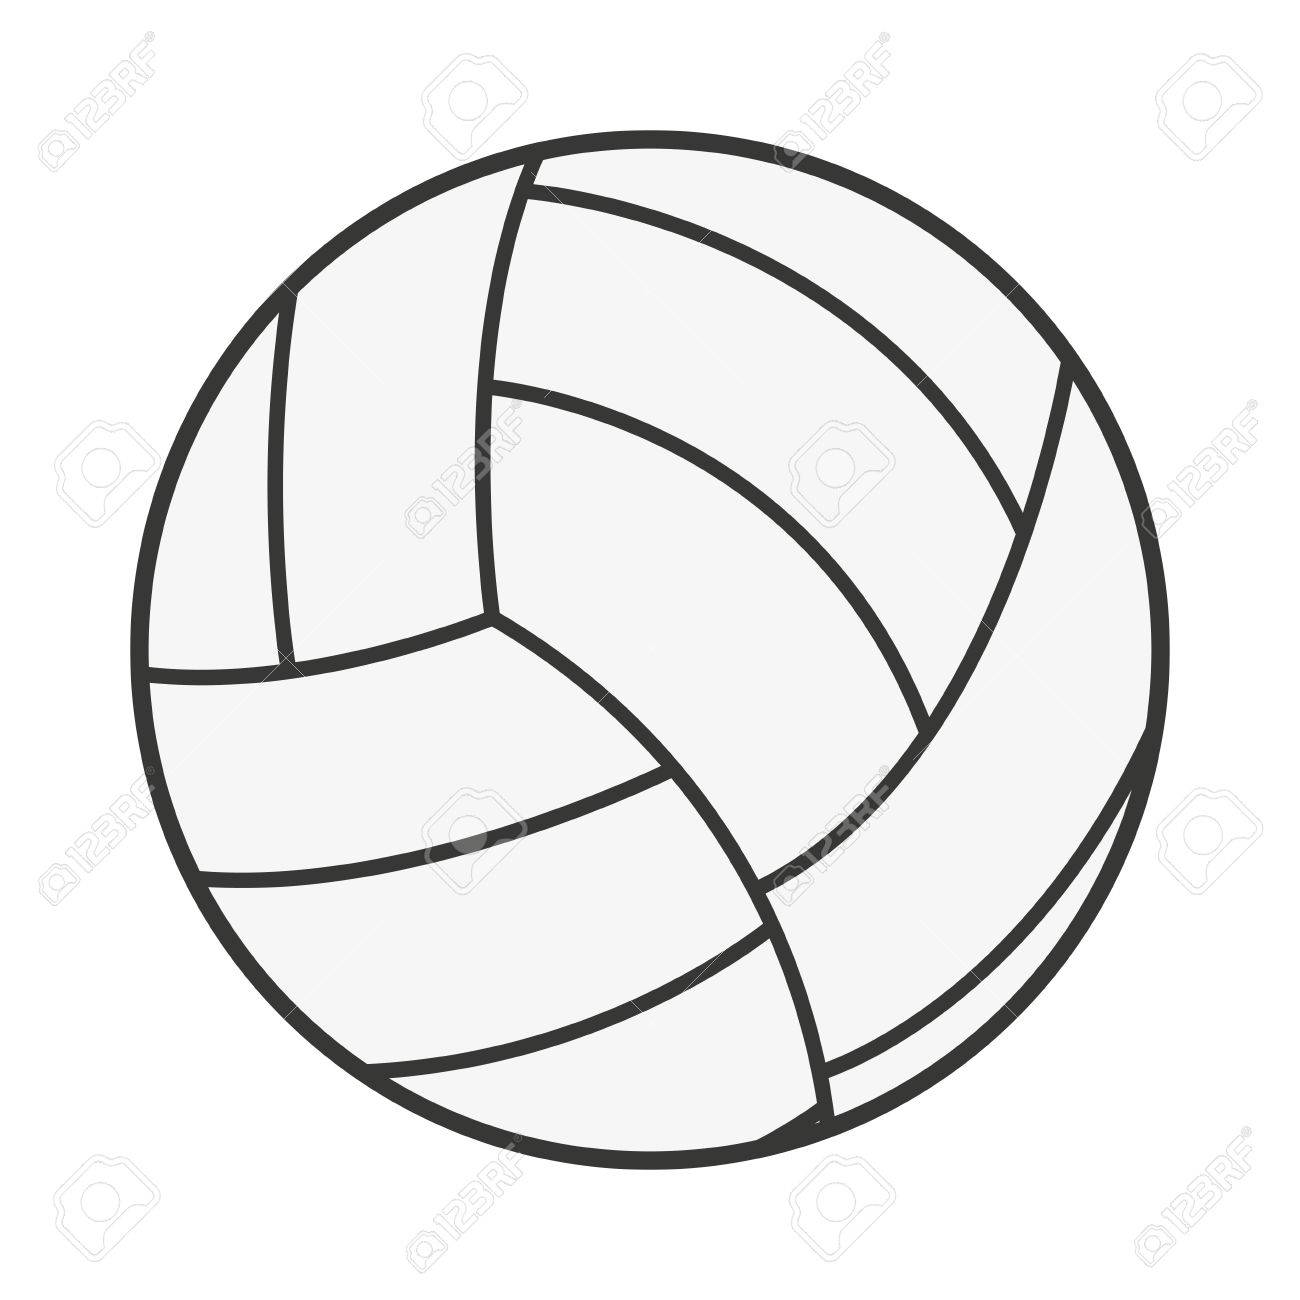 volleyball ball isolated icon design vector illustration graphic rh 123rf com volleyball graphics or clip art volleyball graphic tees justice